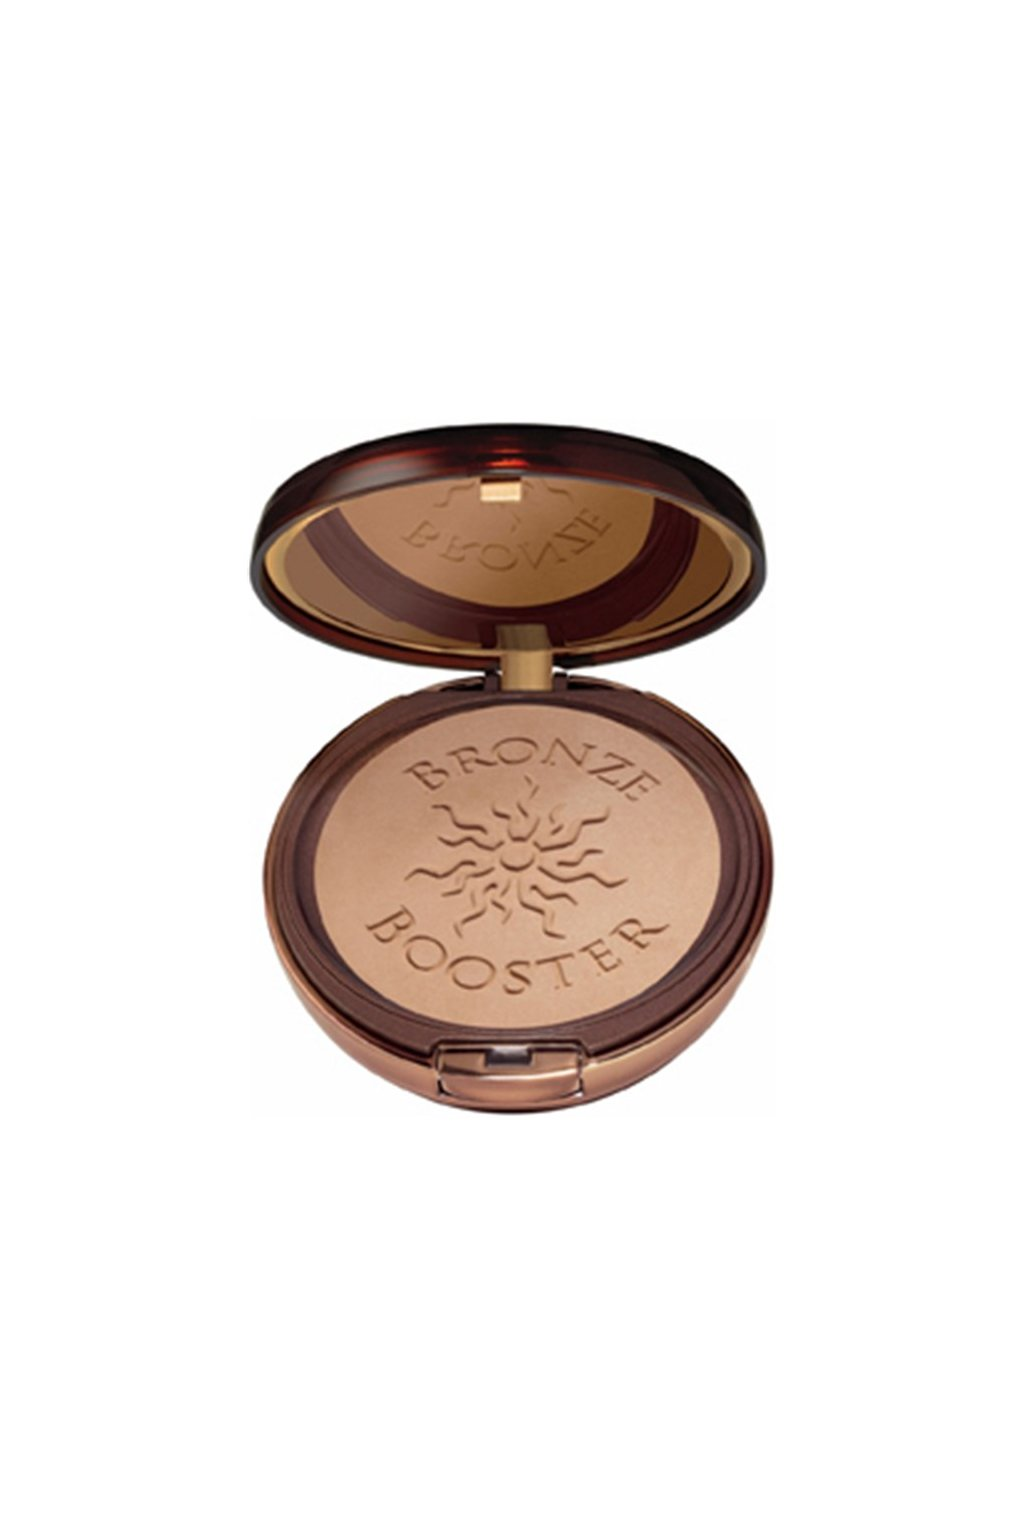 physicians formula bronze booster kompaktni bronzujici pudr light to medium